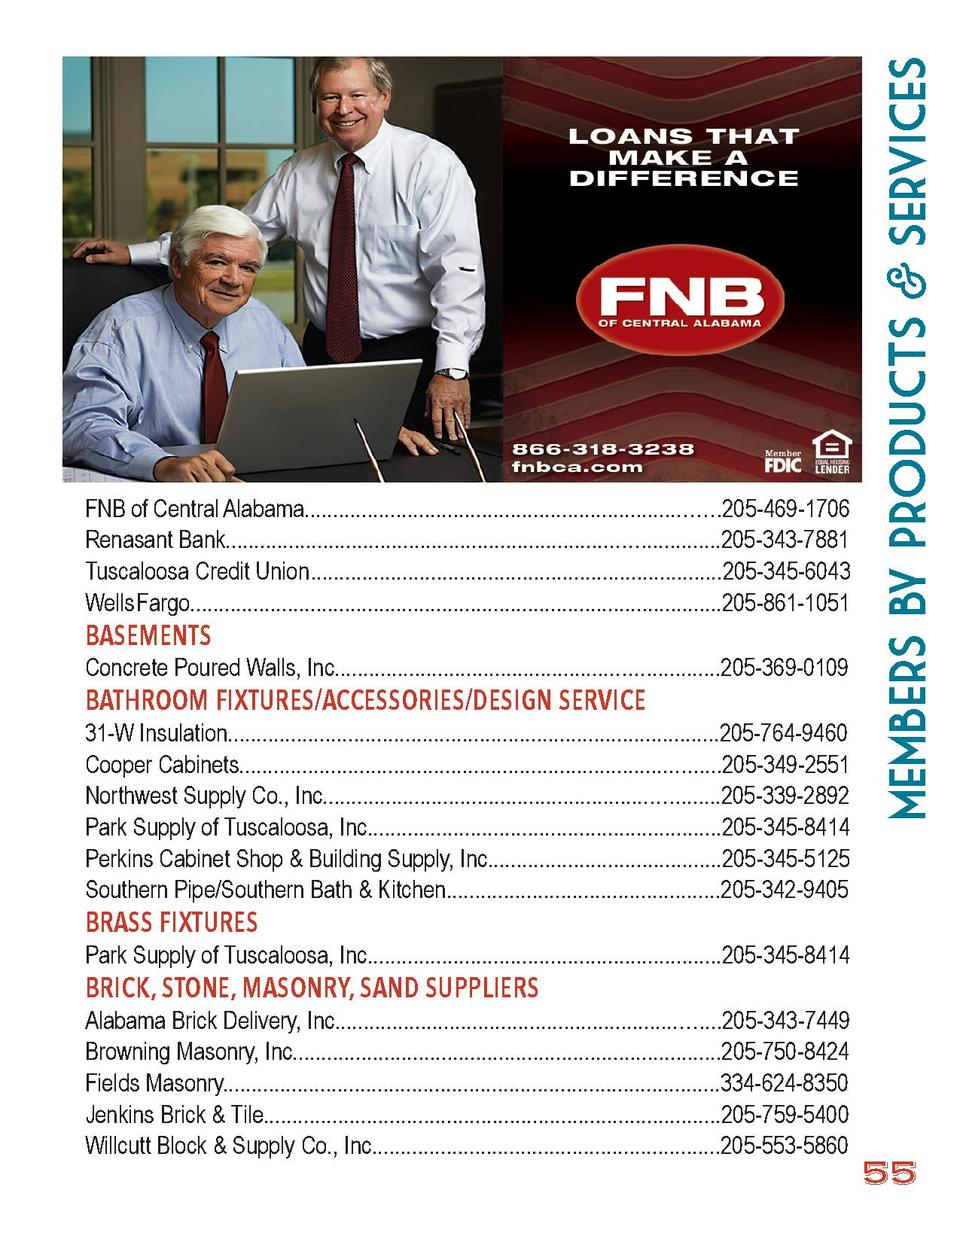 members by Products   Services  FNB of Central Alabama.......................................................................